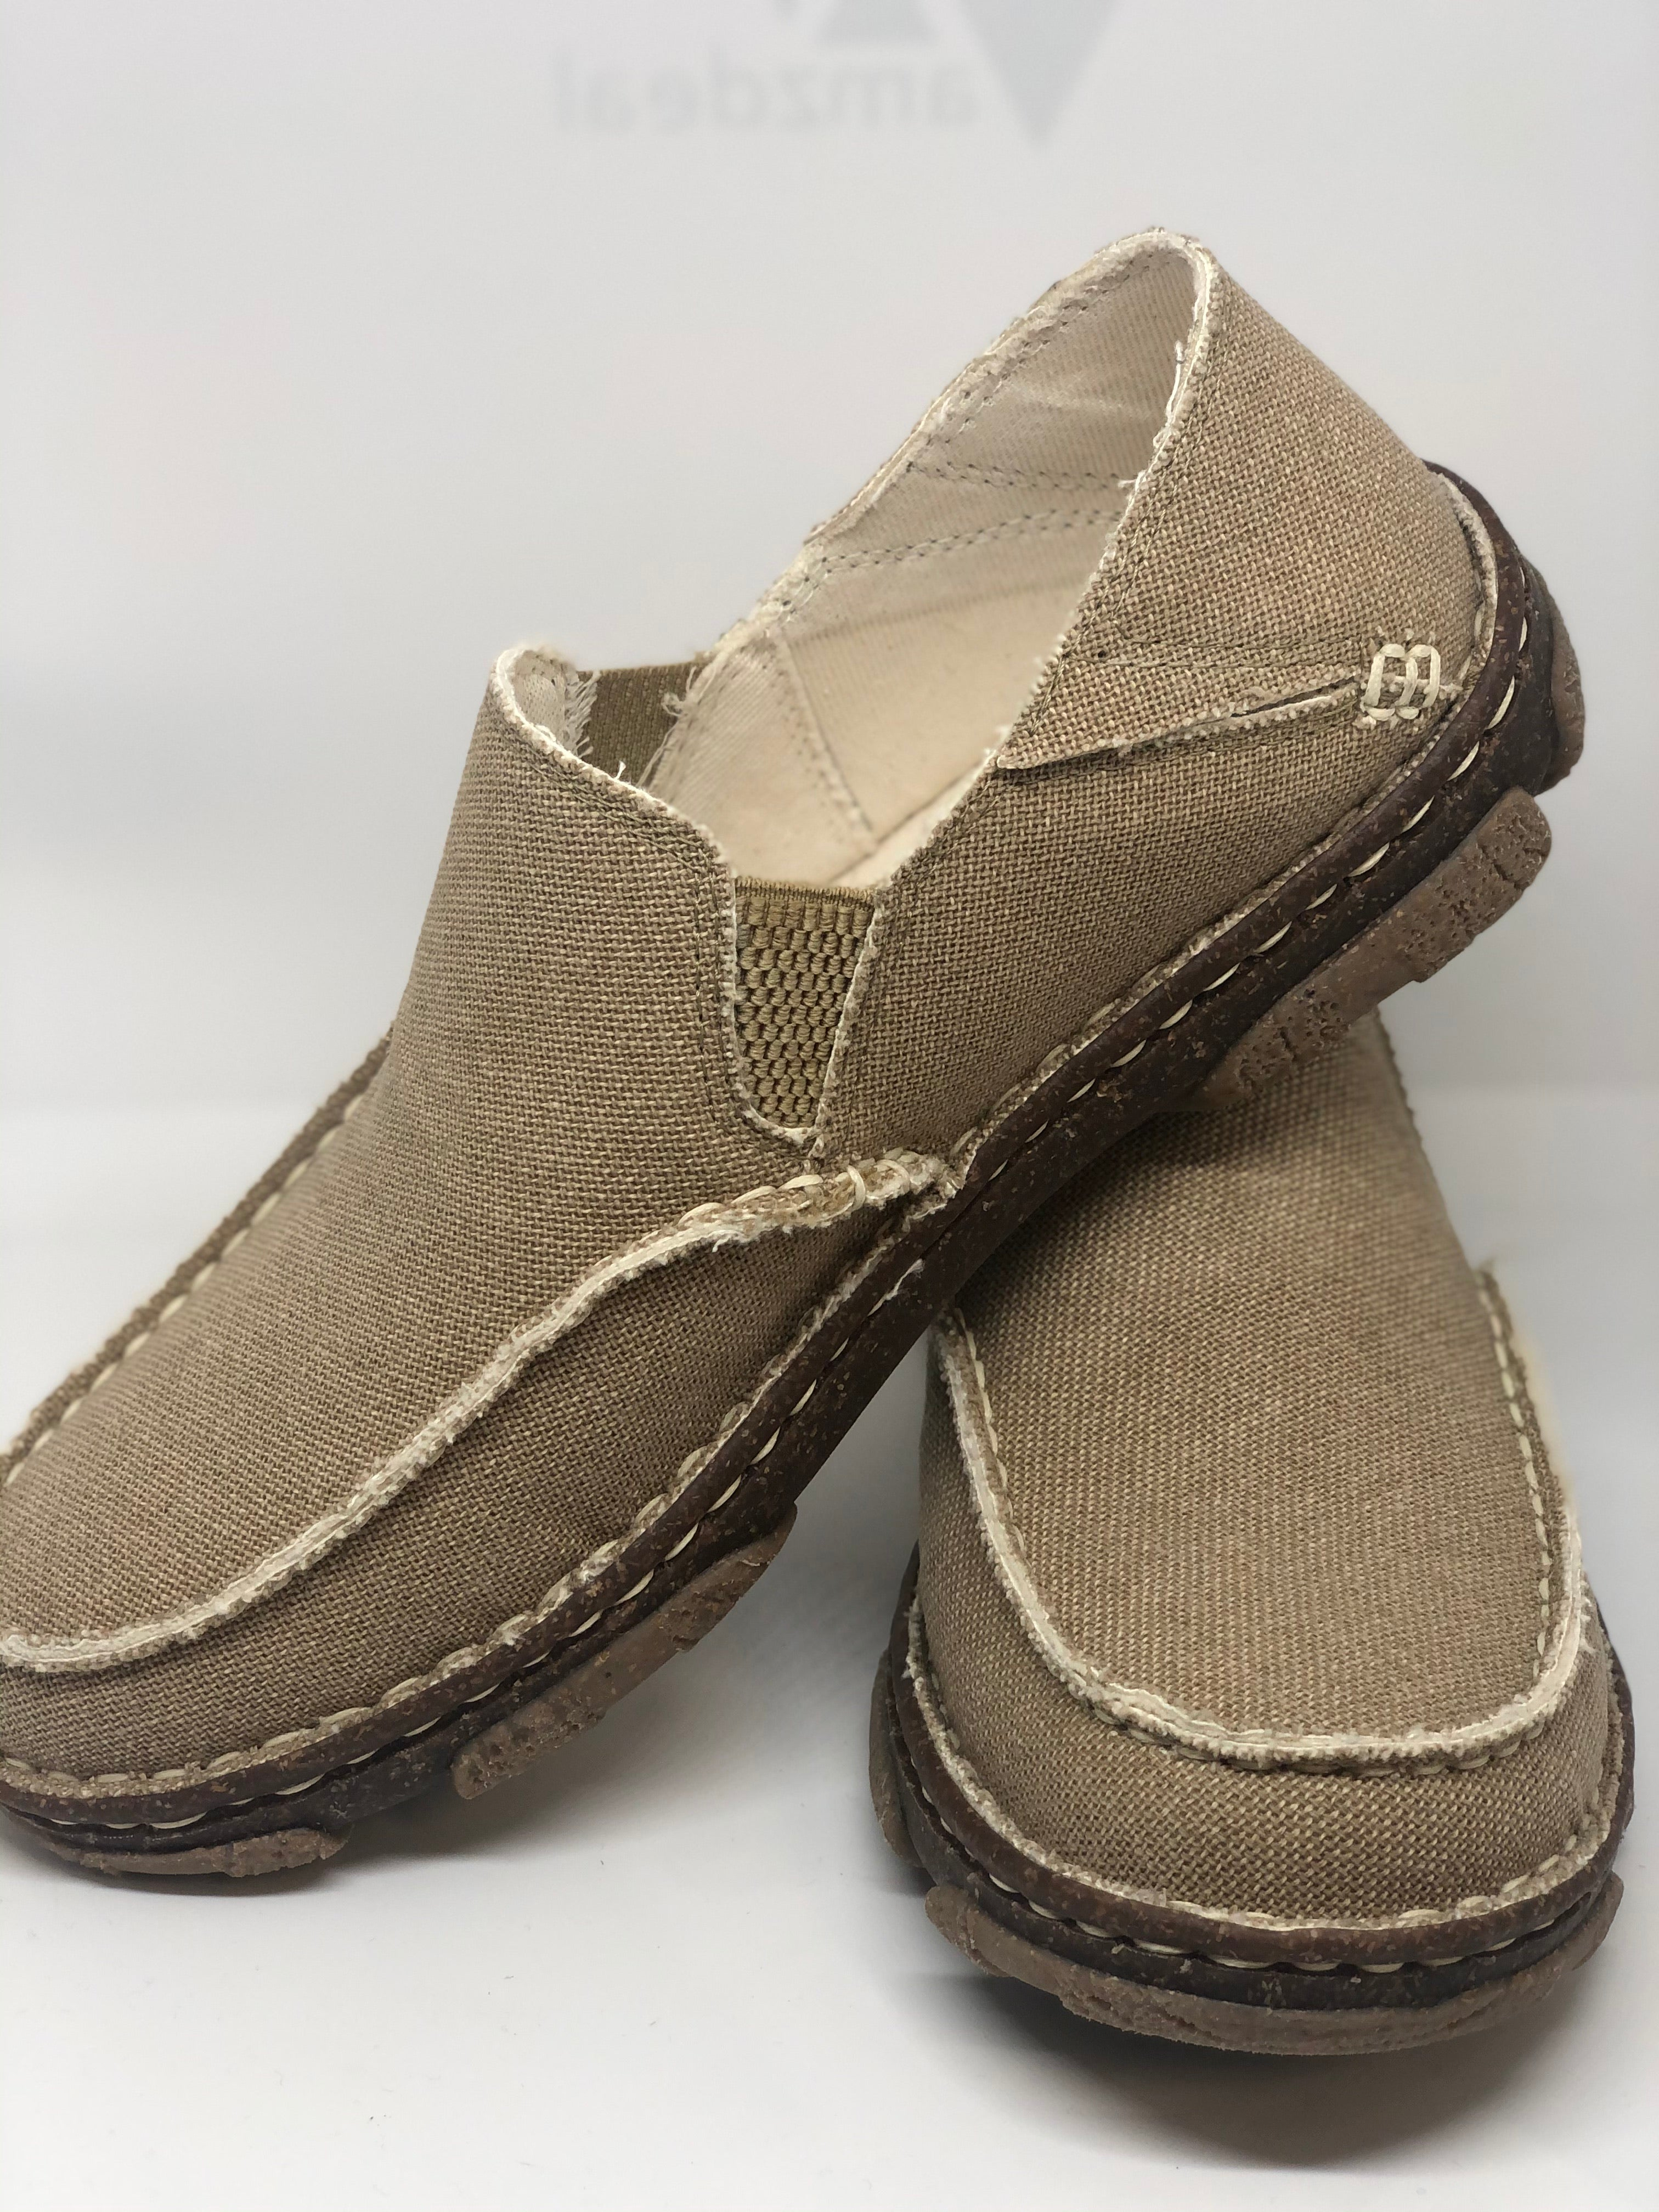 Tony Lama Gator Tan Shoe (TLC125)